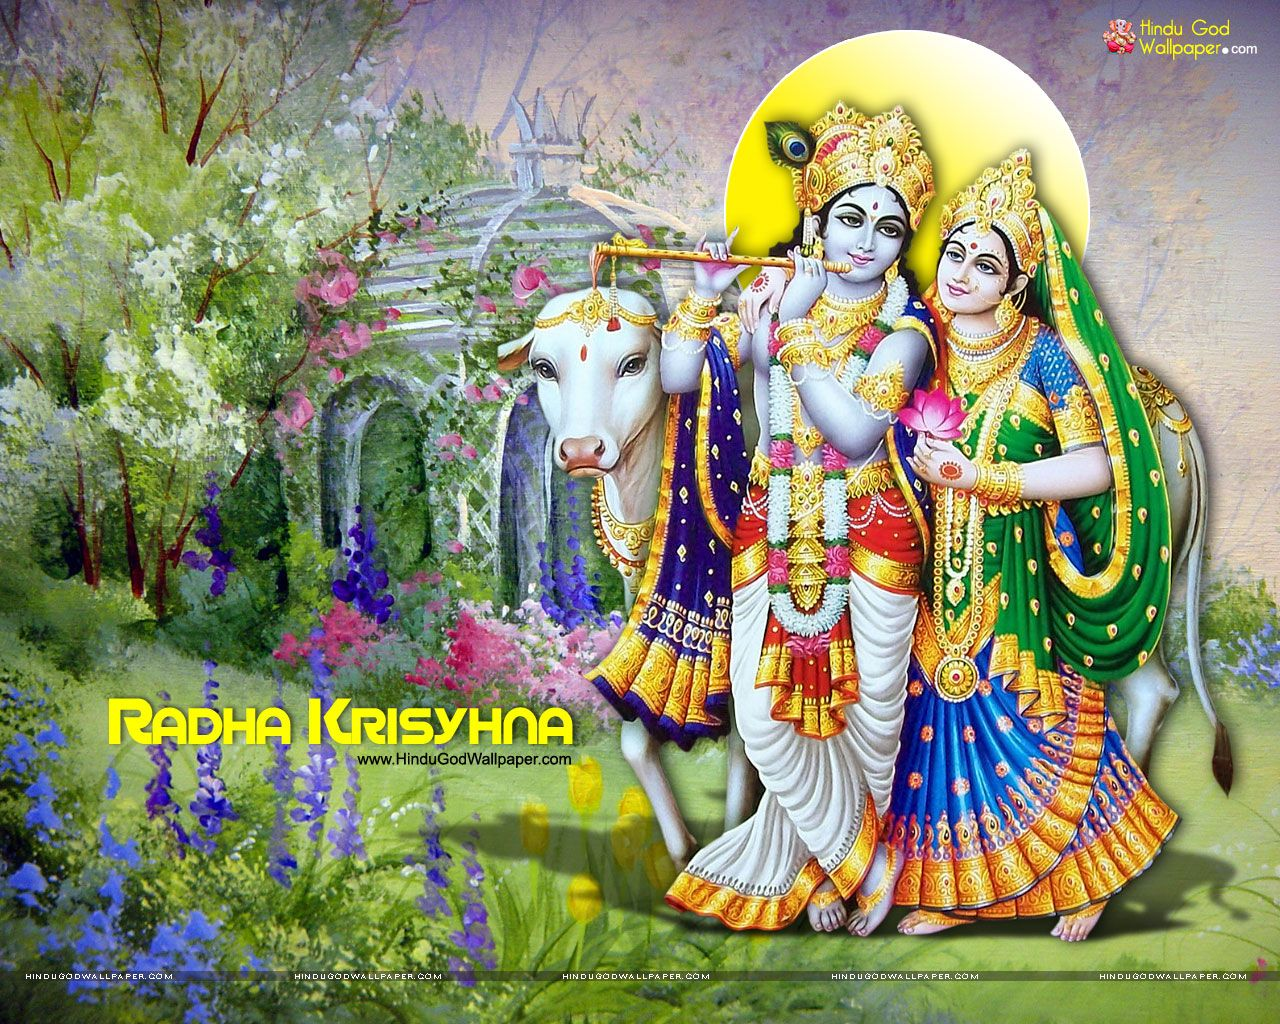 Free Download Lord Radha Krishna Hd Wallpapers High Resolution For Desktop And Full Size Shri Radha Radha Krishna Wallpaper Krishna Wallpaper Radha Krishna Art